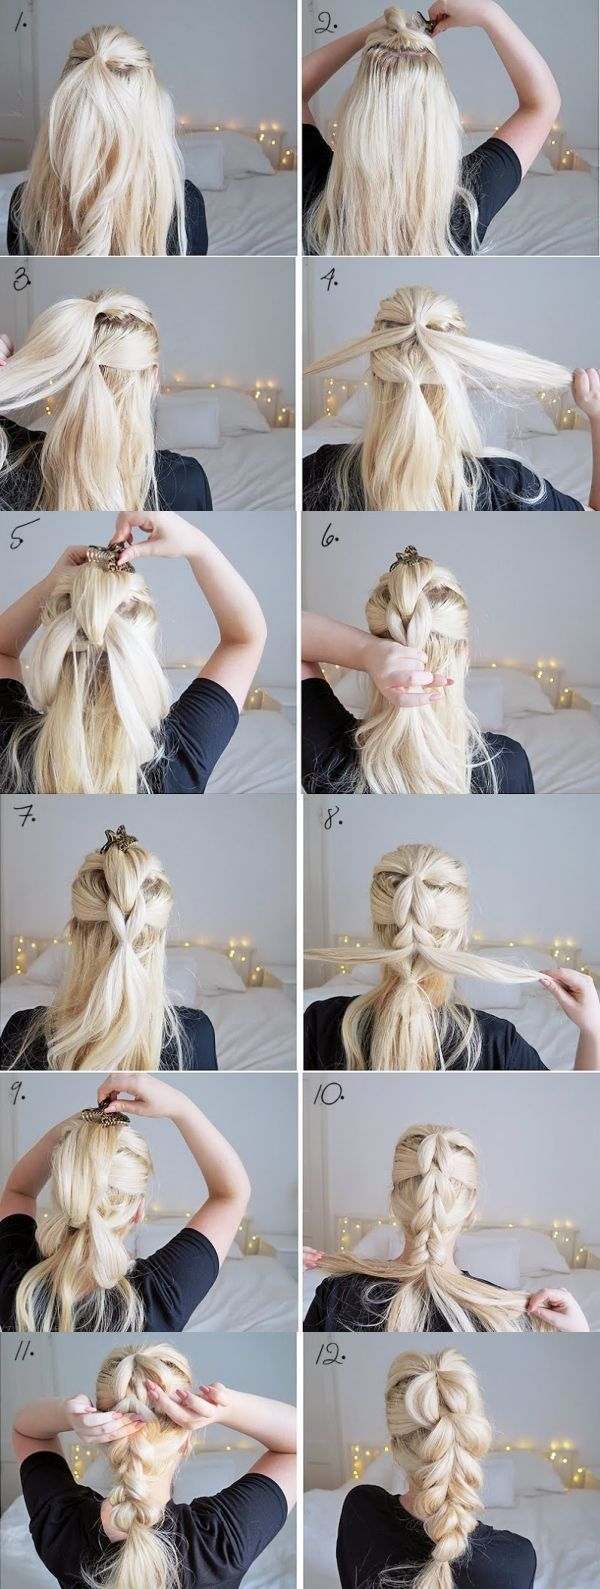 Photo of 60 Hairstyles That Can be Done in 3 Minutes